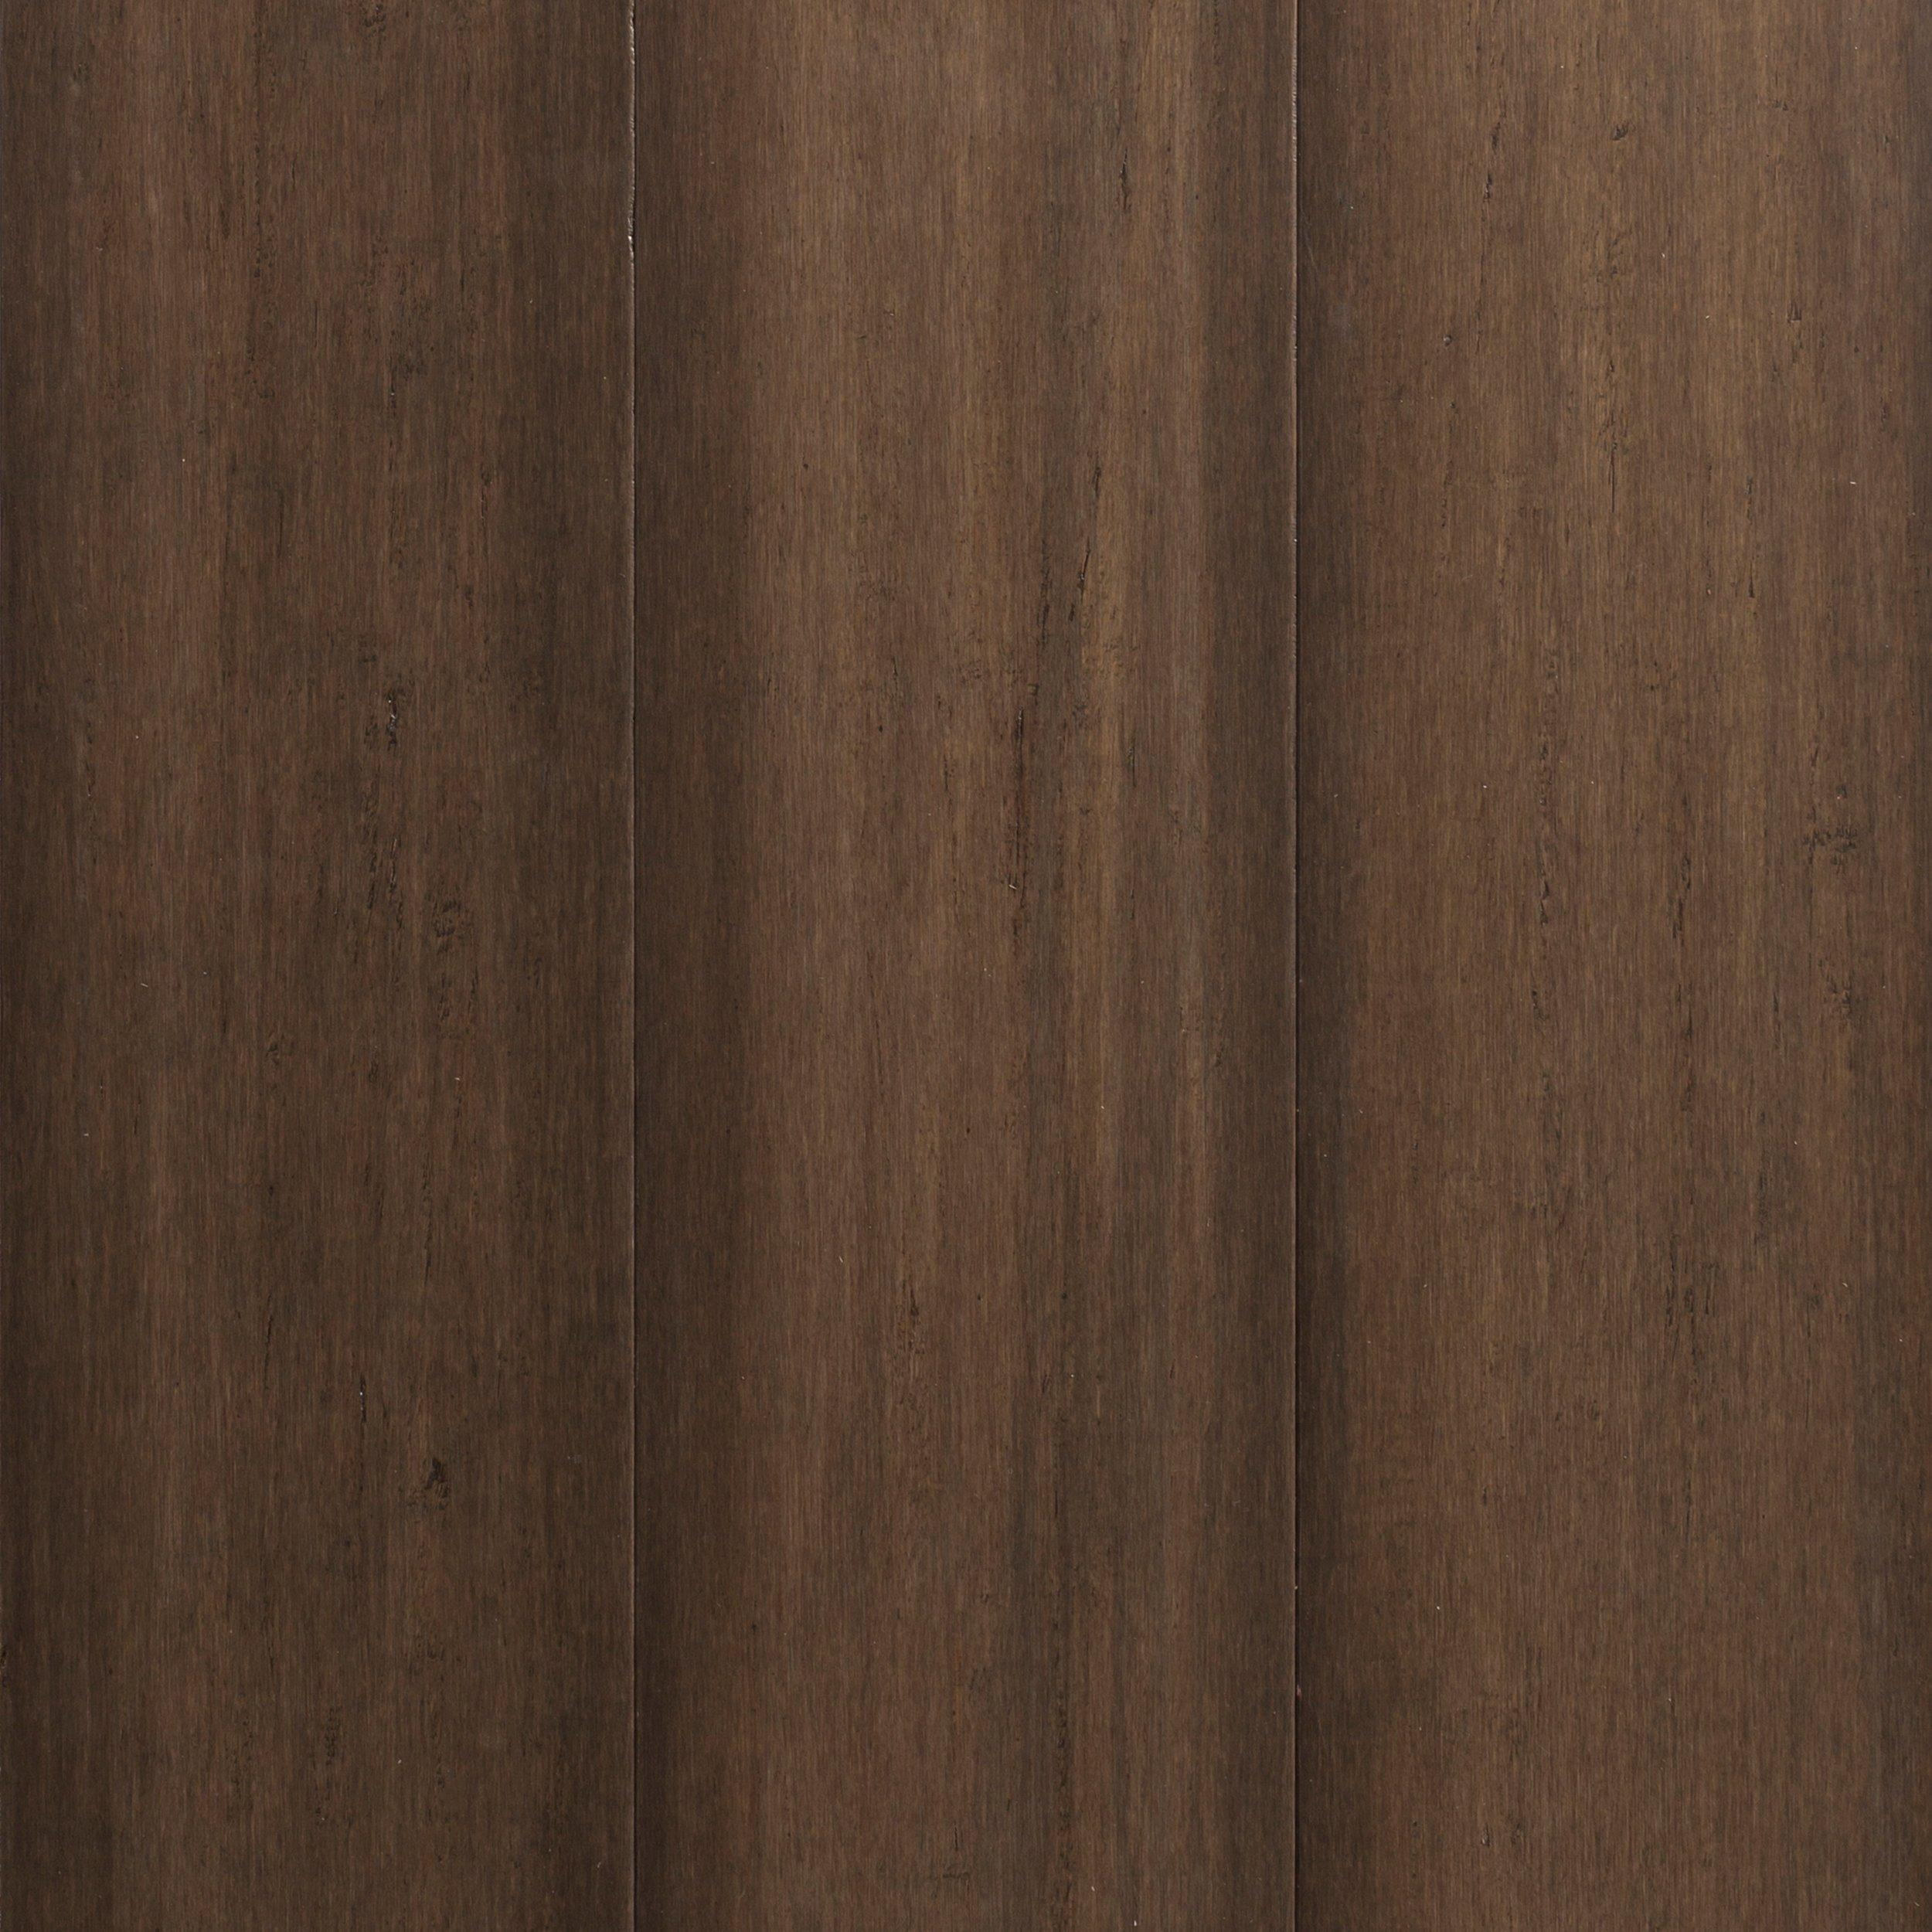 ecoforest greige hand scraped locking engineered bamboo 916in x 7in floor and decor